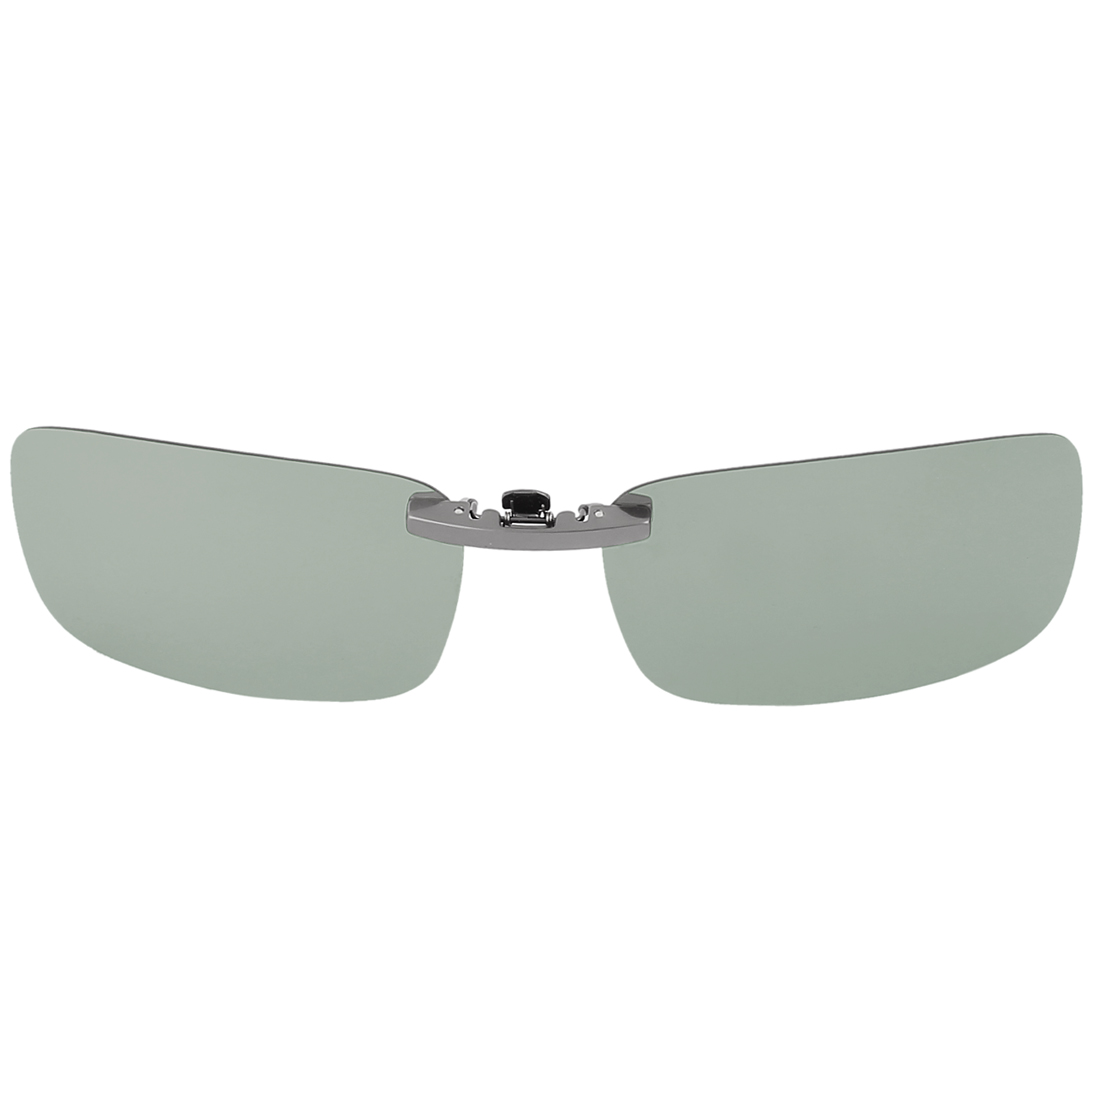 Unisex Outdoor Hiking Travel Gradient Silver Tone Lens Rimless Clip On Polarized Sunglasses Glasses Eyewear